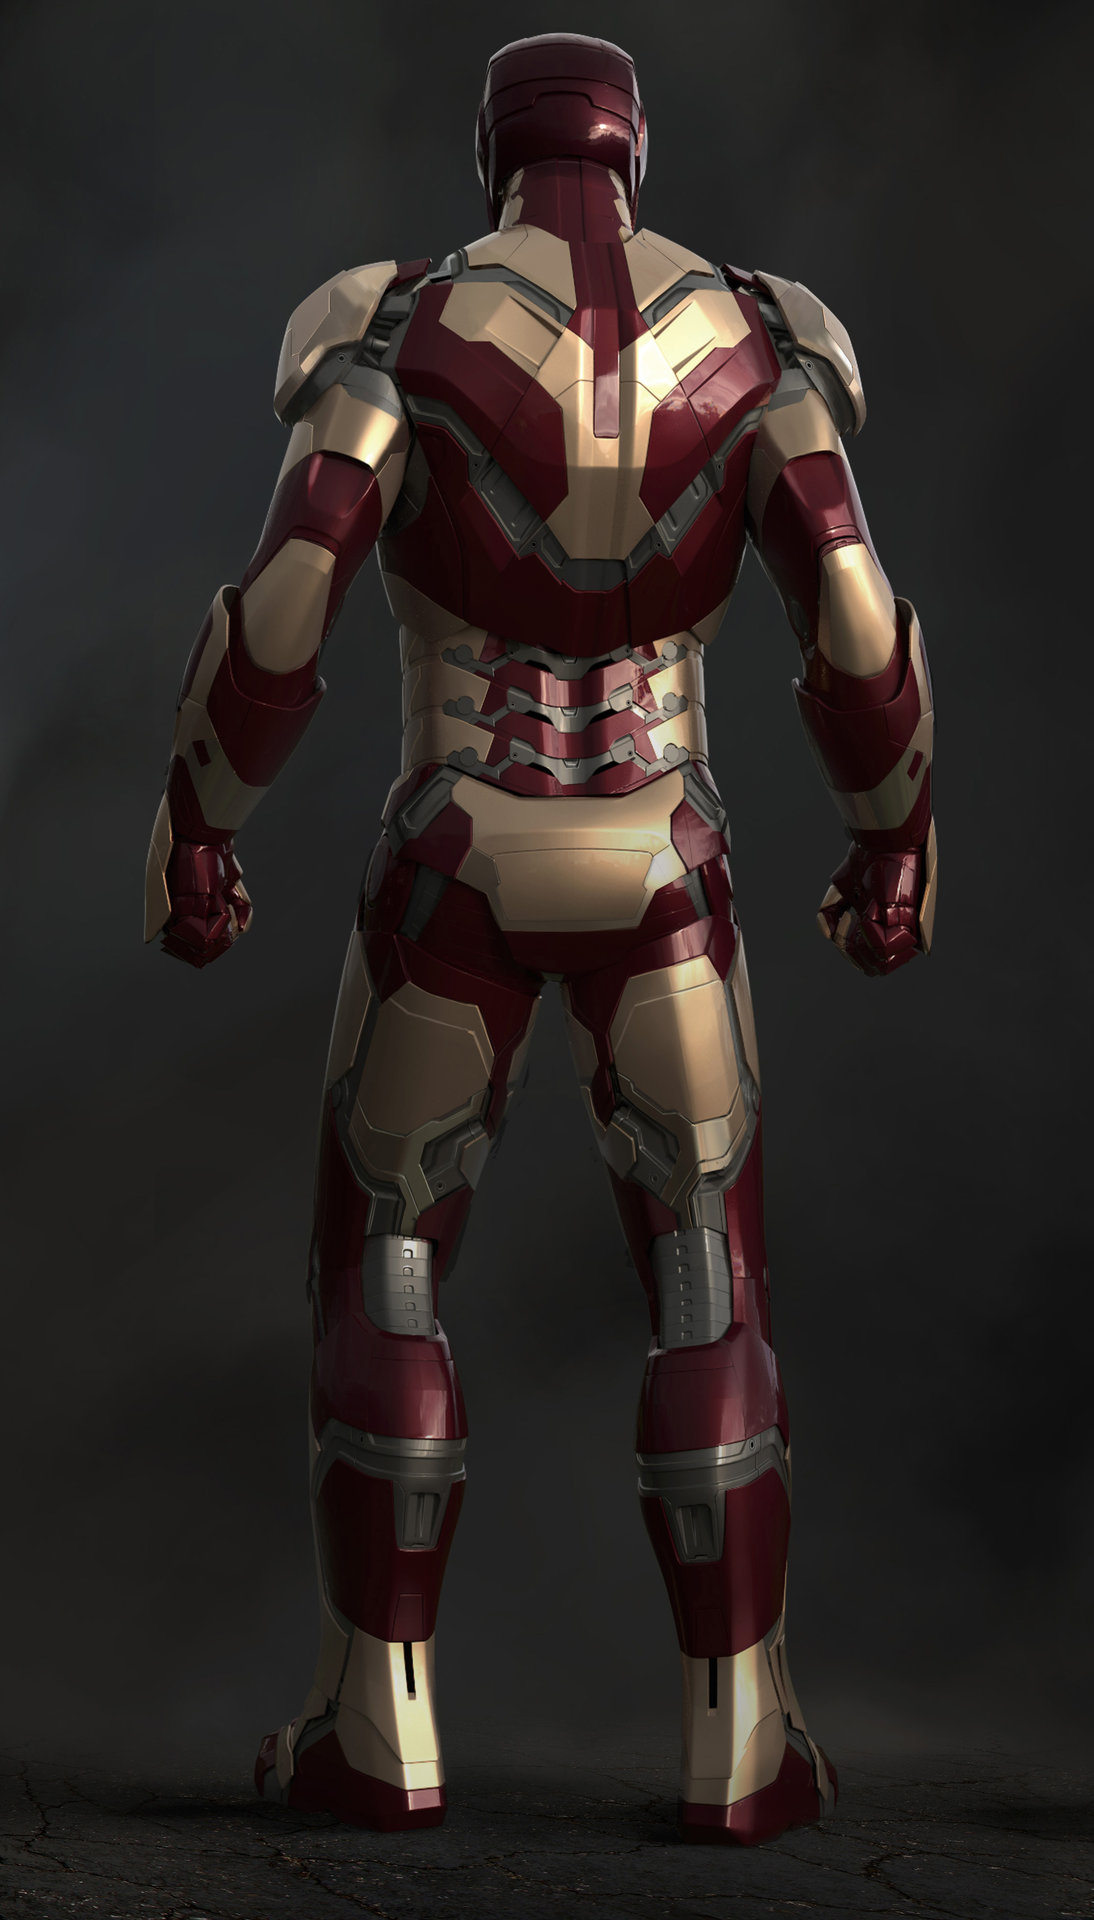 ArtStation - Iron Man 3 - Mark 42 Back, Josh Herman